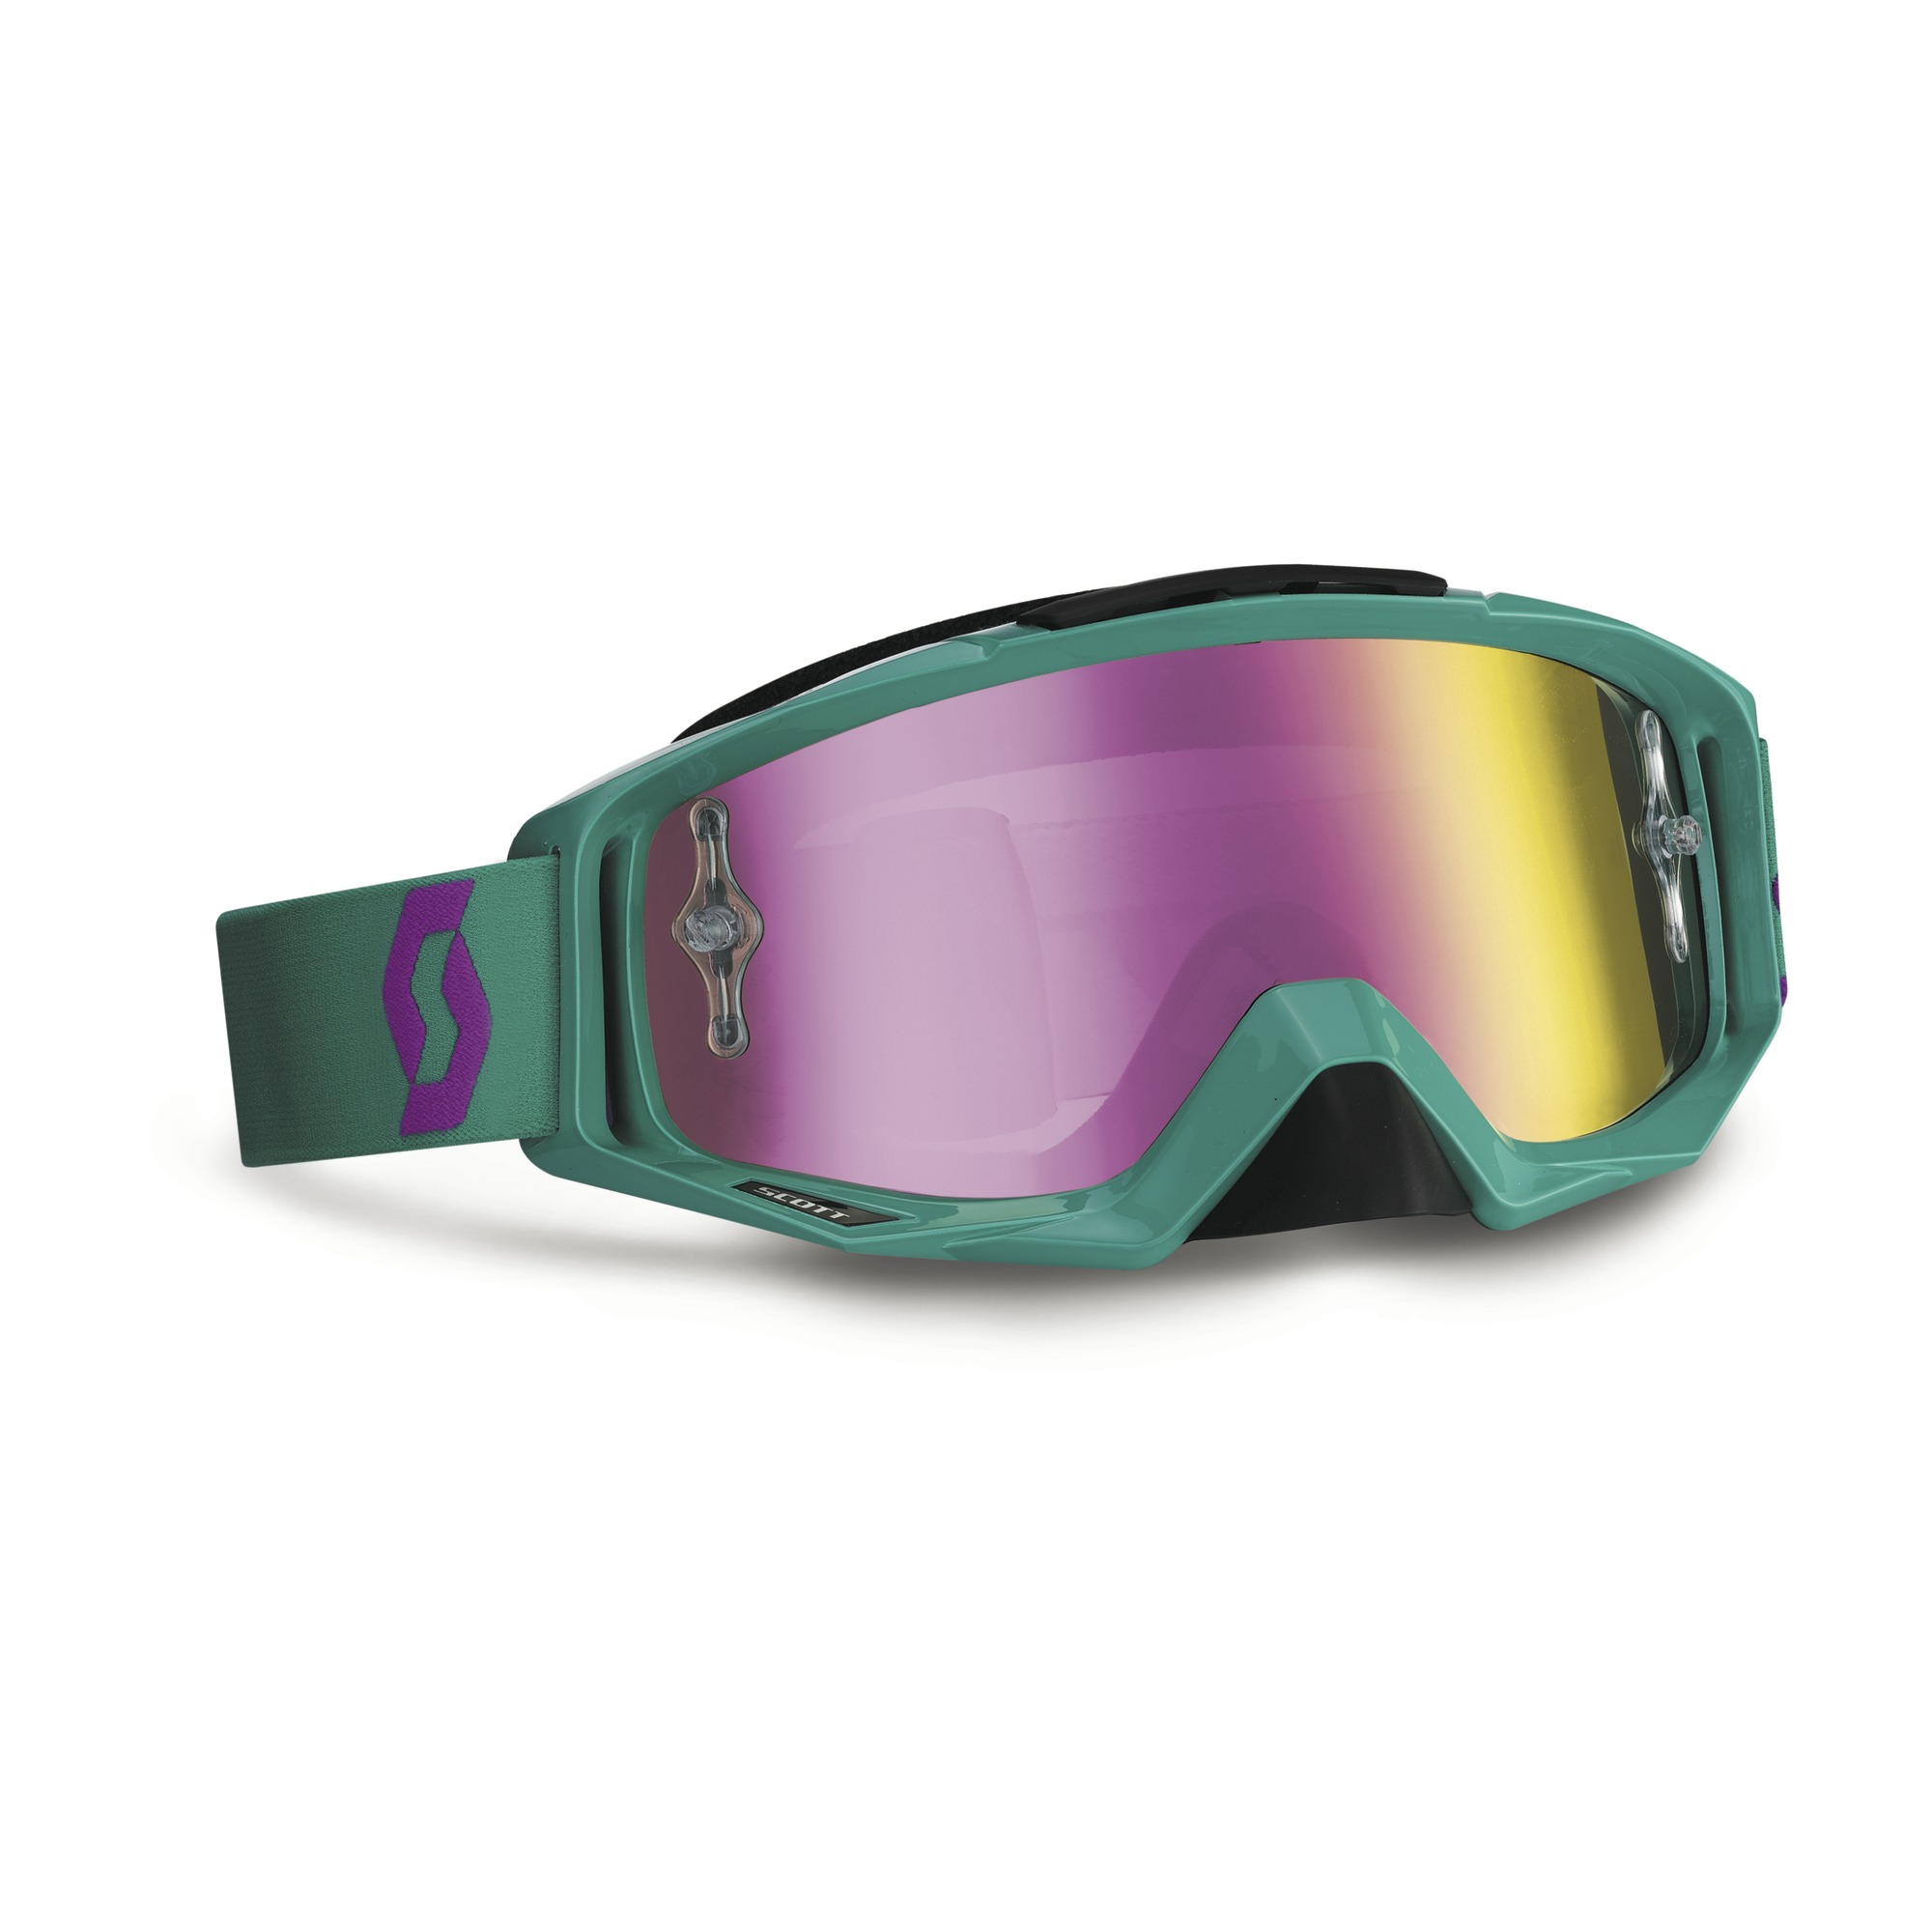 Scott Oxide Tyrant cross goggles Green Purple